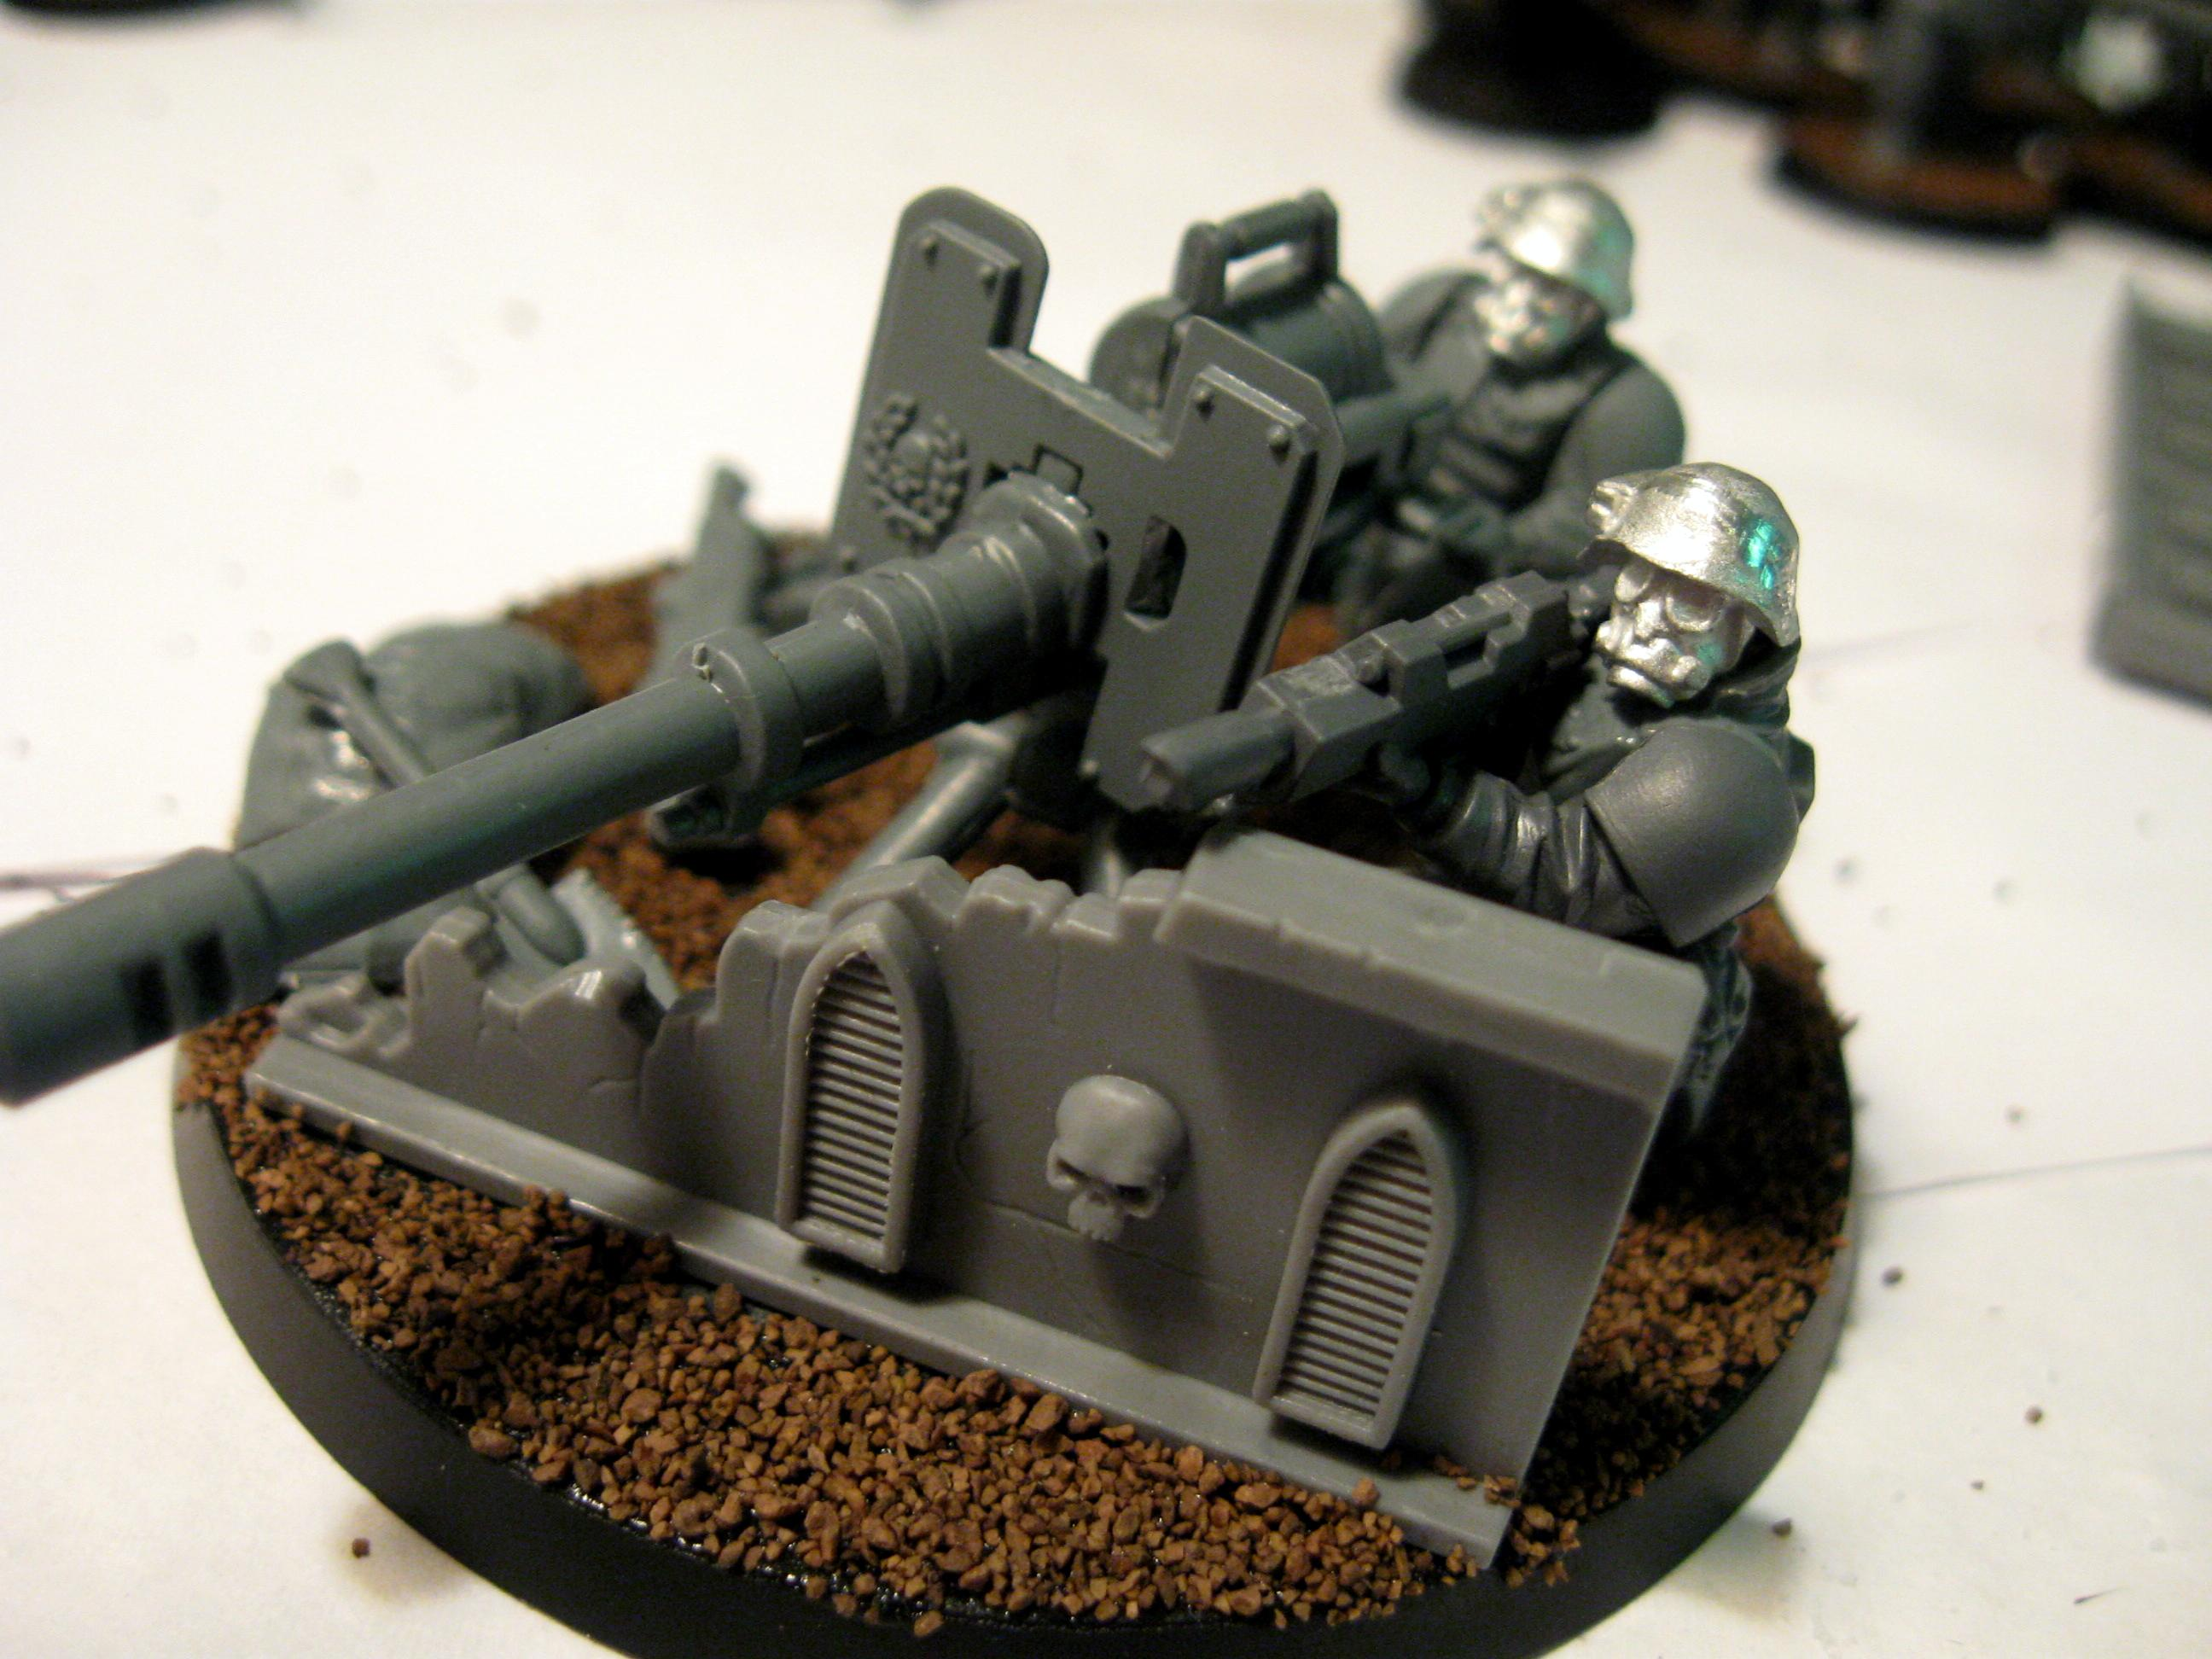 Autocannon, Cities Of Death, Imperial Guard, Pig Iron